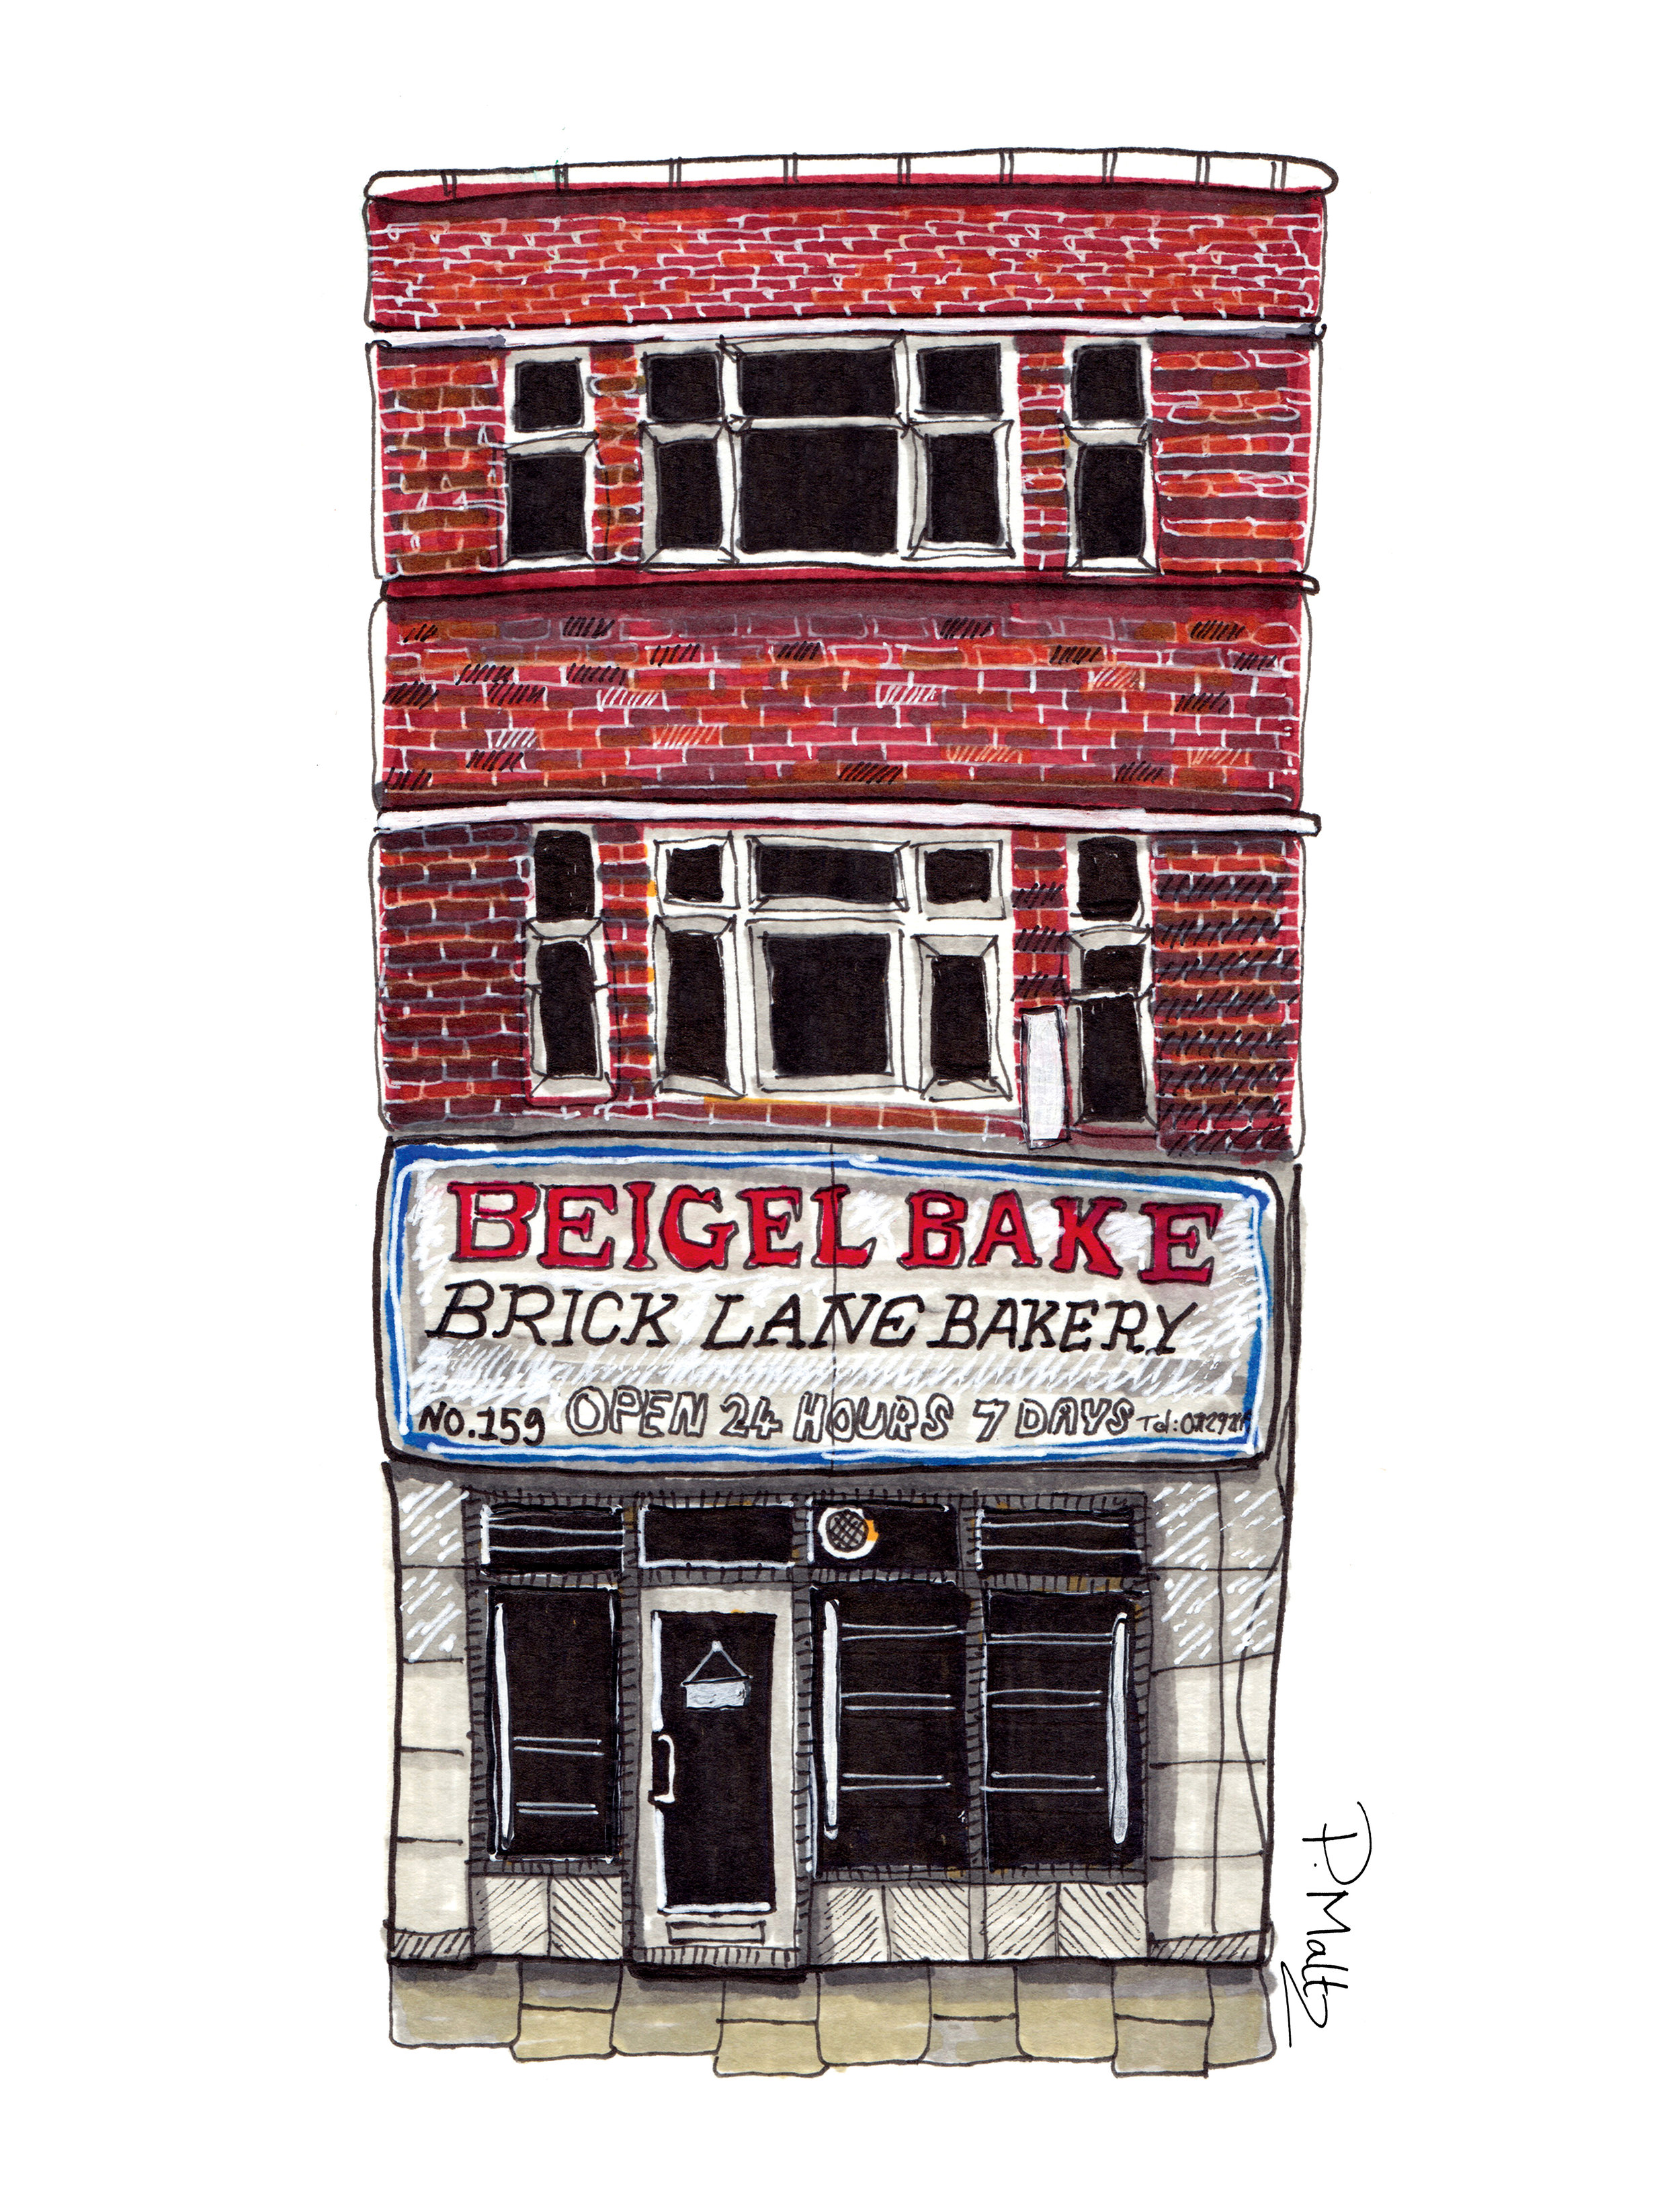 Beigel Bake Brick Lane by Phil Maltz